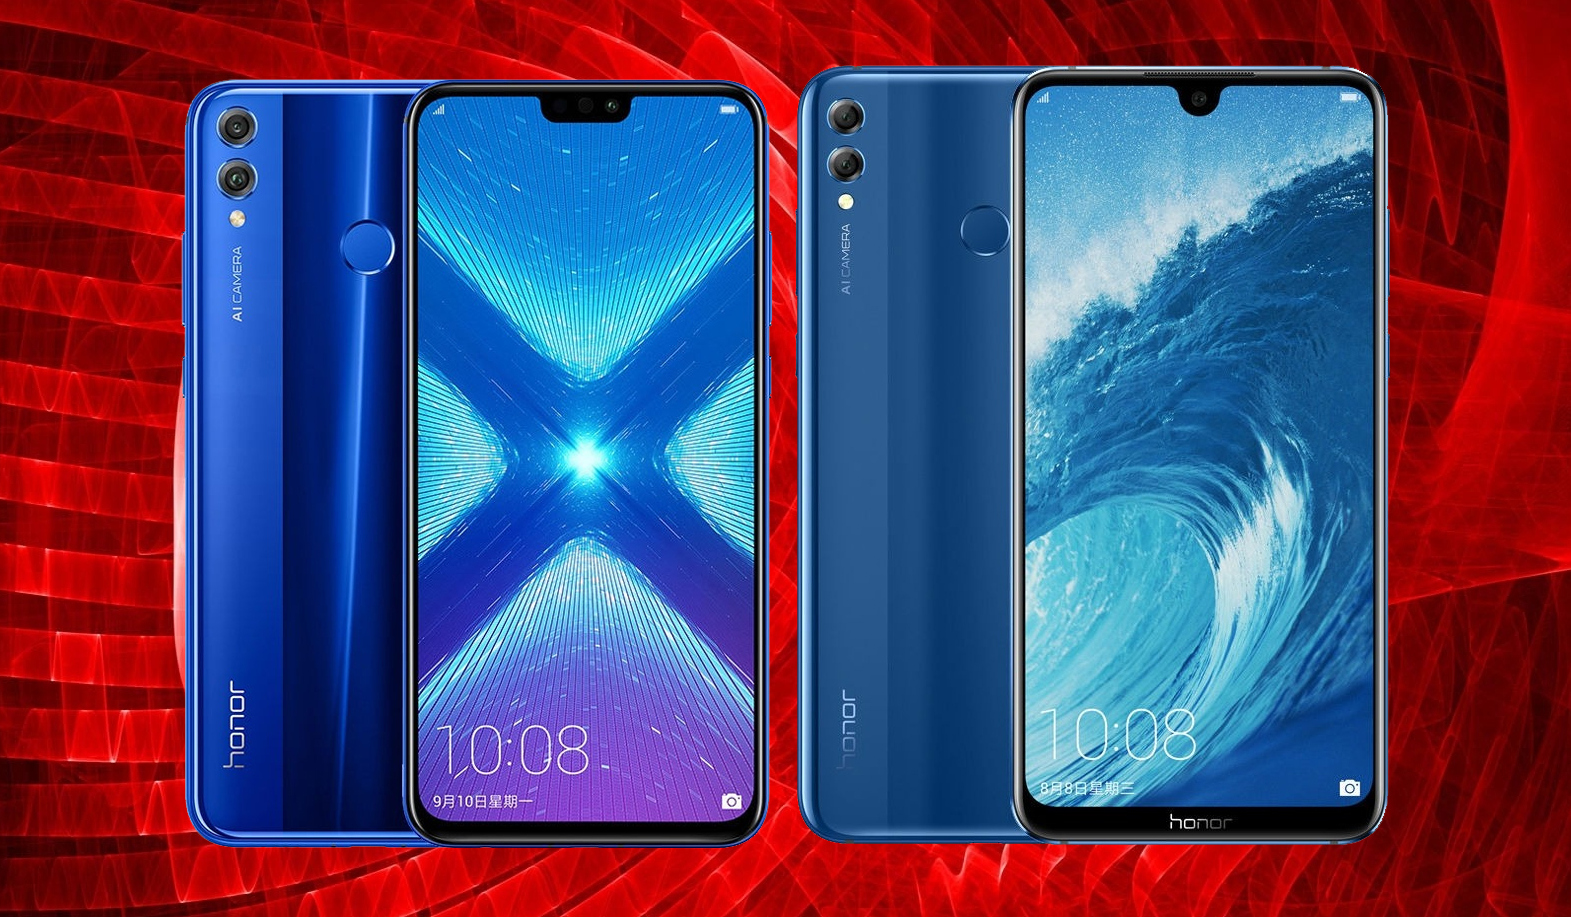 Honor 8X vs Honor 8X Max